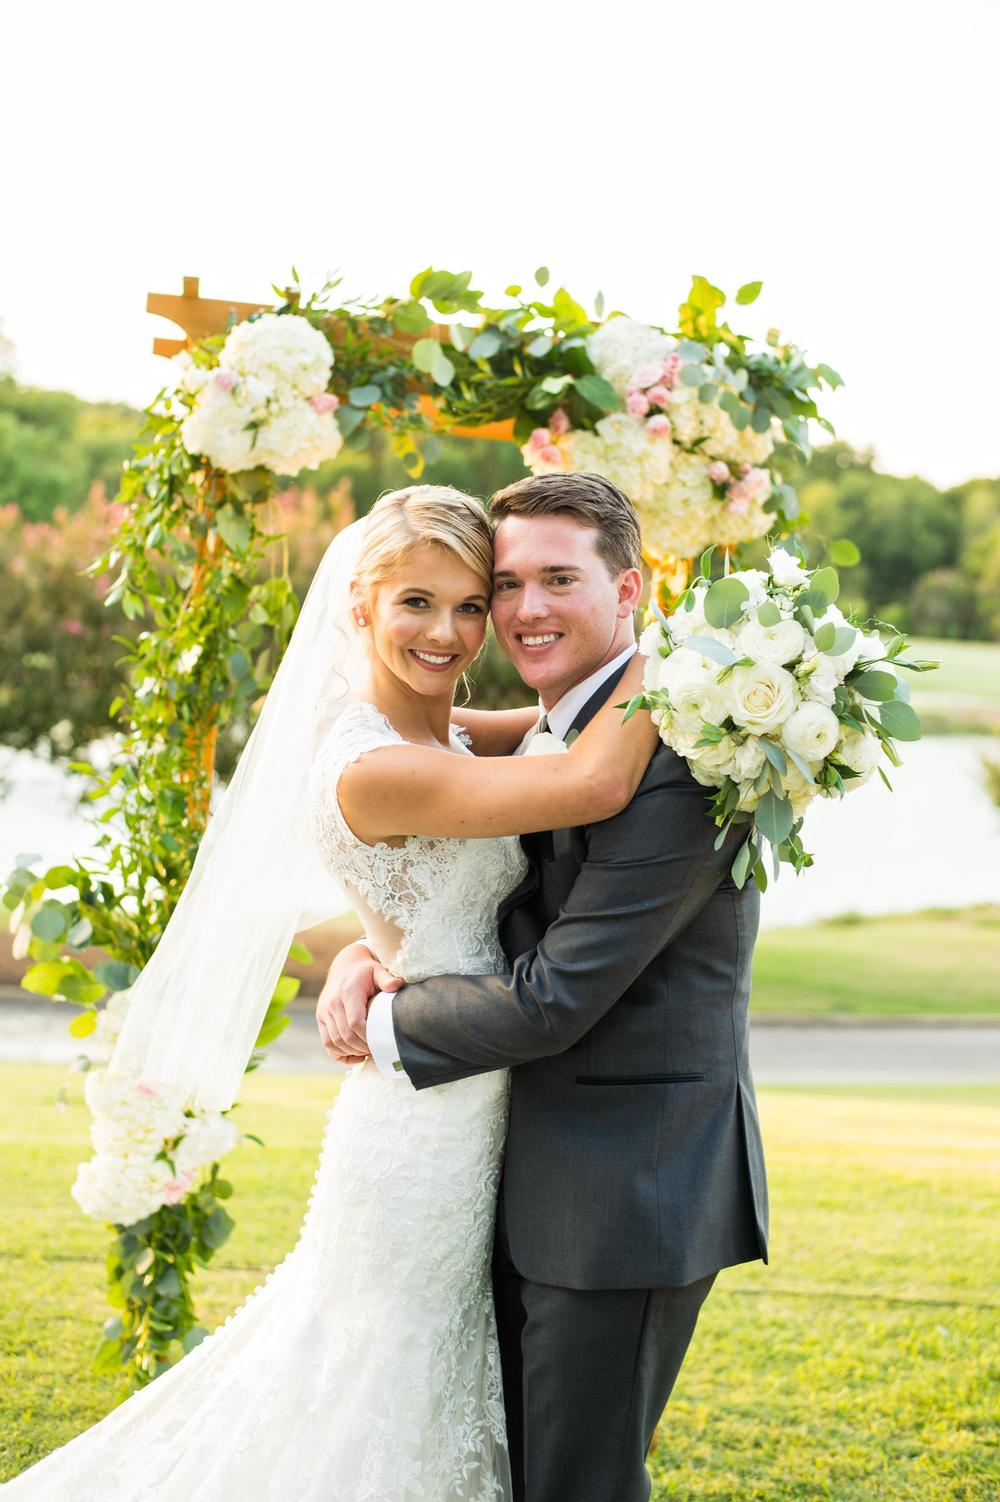 Bride & groom outdoor portrait